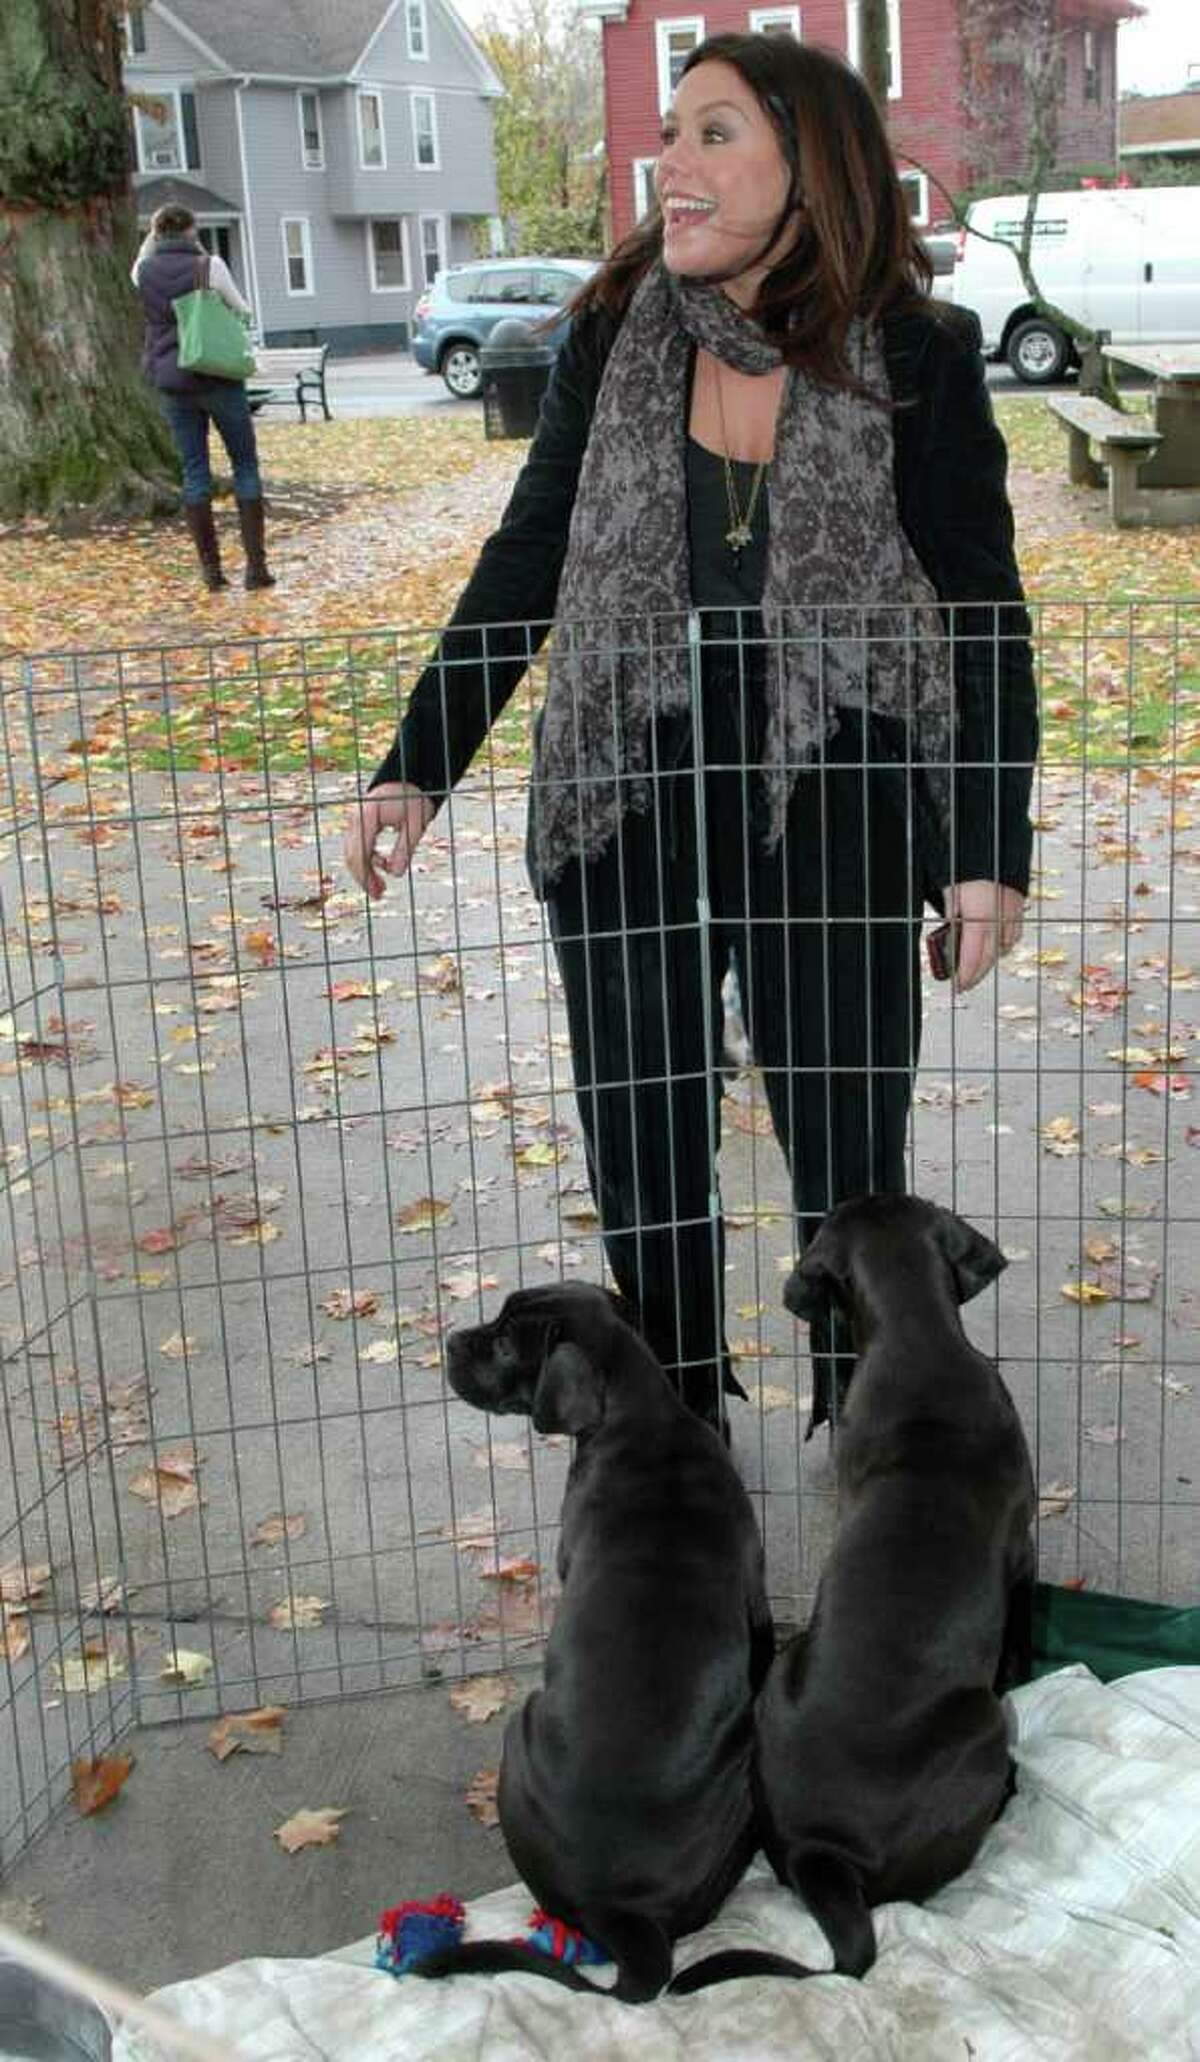 Rachael Ray stopped by the Adopt-A-Dog event on Sherman Green in Fairfield, Conn. on Friday November 5, 2010. After posing with some of the dogs up for adoption, Rachael made a $7,500 donation to the cause before heading over to Borders Bookstore for a booksigning.